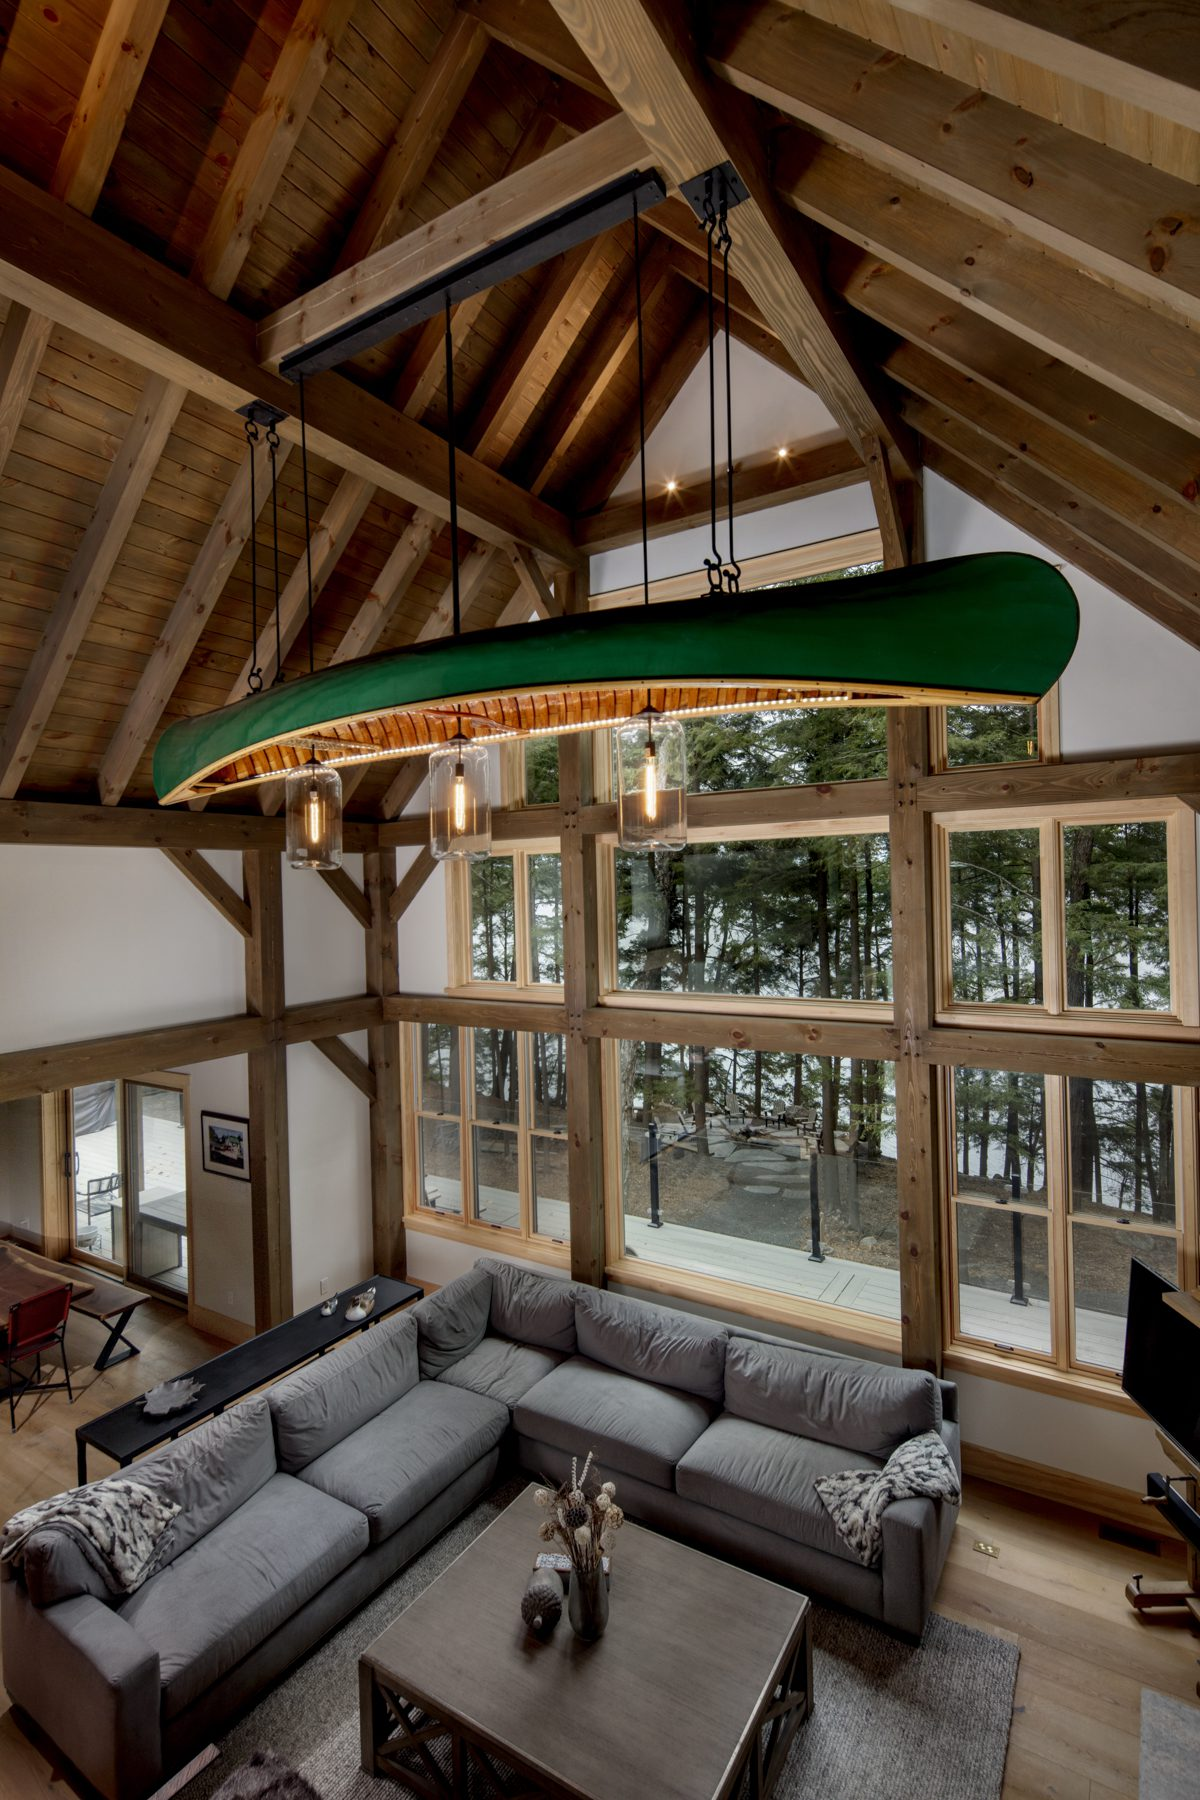 Normerica Timber Frame, Interior, Cottage, Great Room, Living Room, Cathedral Ceiling, Canoe Light Fixture